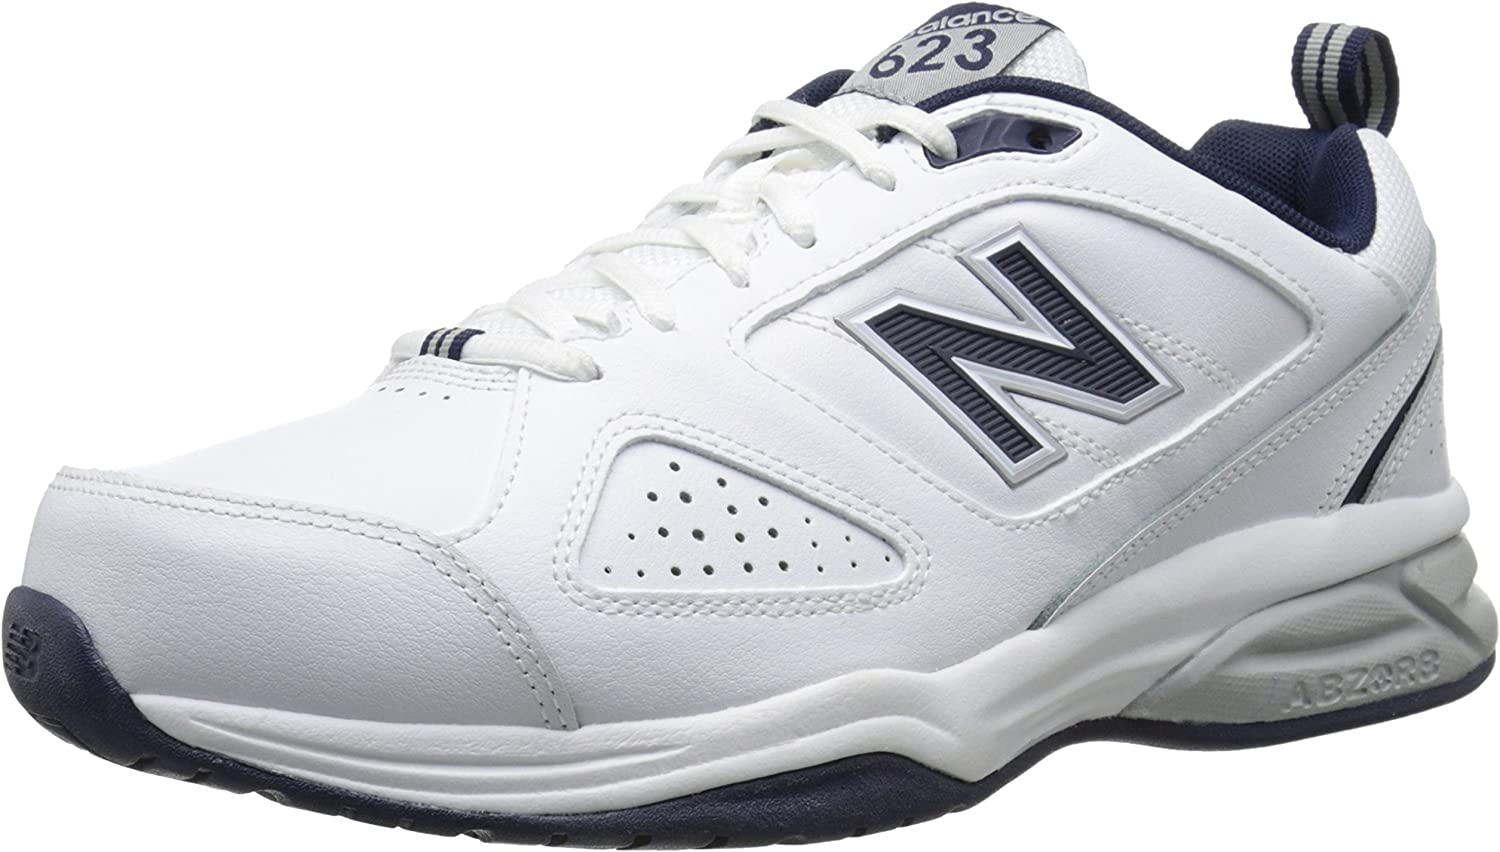 | New Balance Men's 623 V3 Casual Comfort Cross Trainer | Fitness & Cross-Training